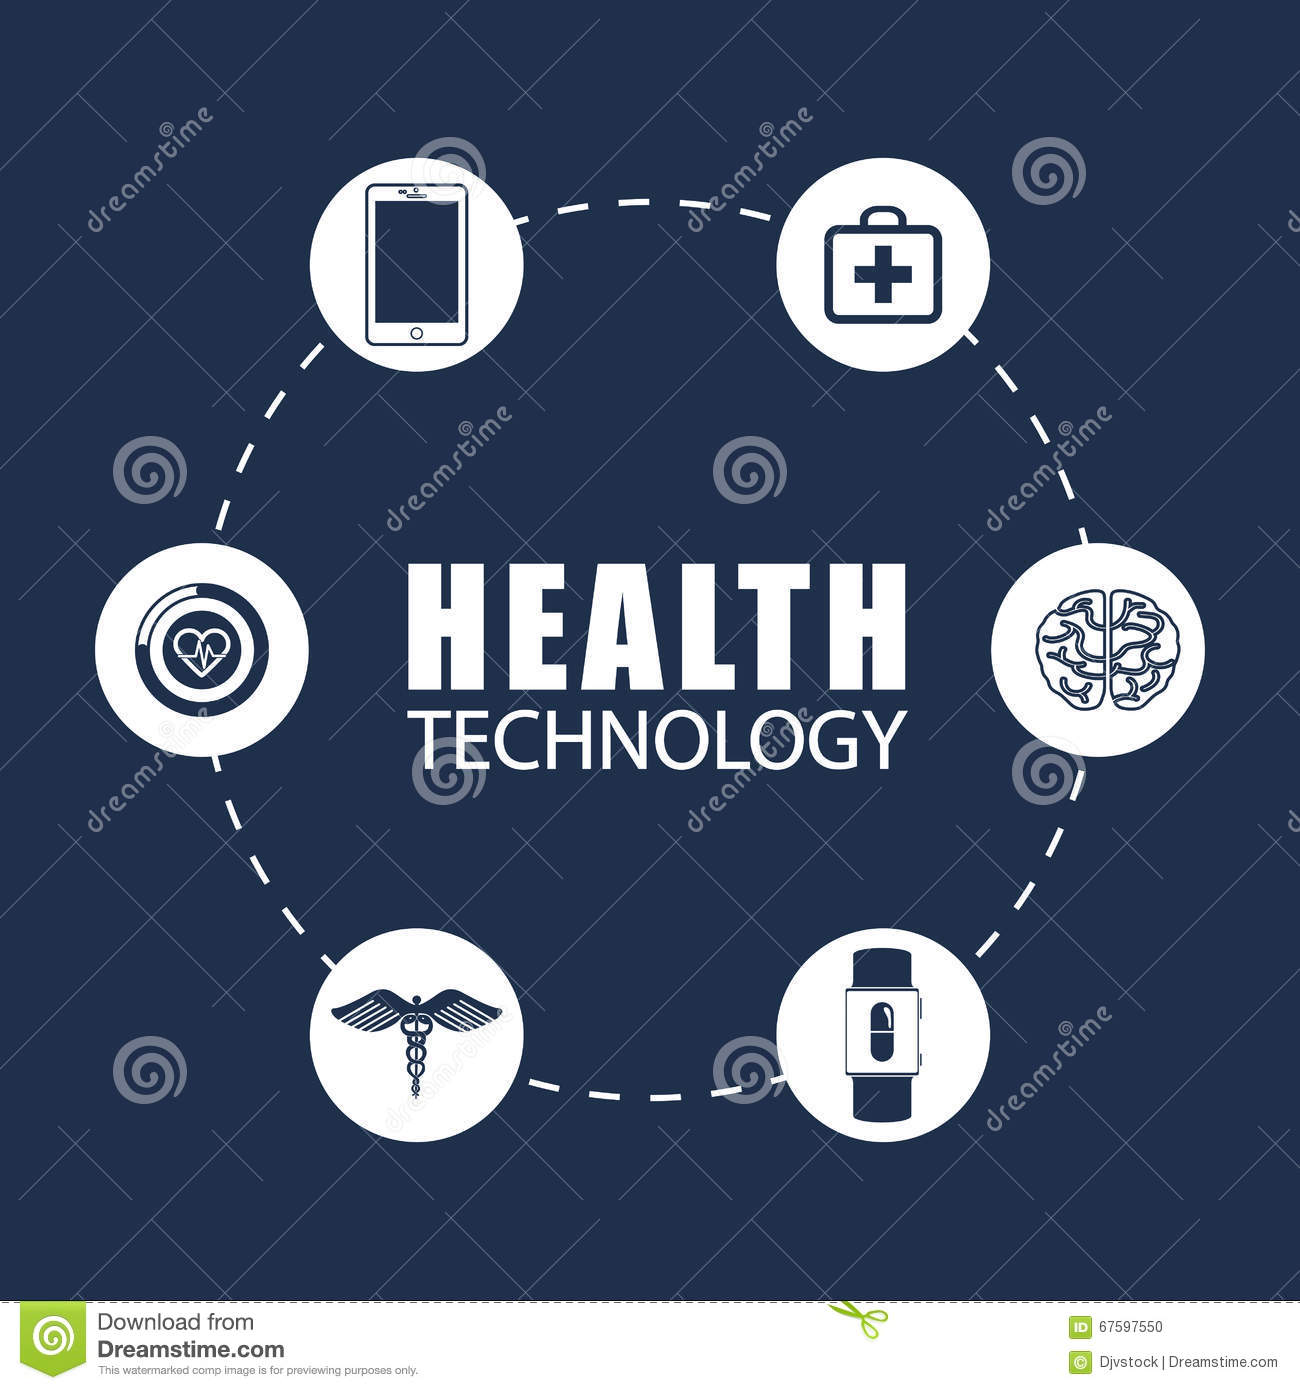 how technology shapes health care essay Impact of technology on health care essay sample information and communication technology has been adopted and implemented within various sectors of the economy this is attributed to the benefits of technology in facilitating organizational activities and processes and its use in meeting the changes which characterize the modern society.